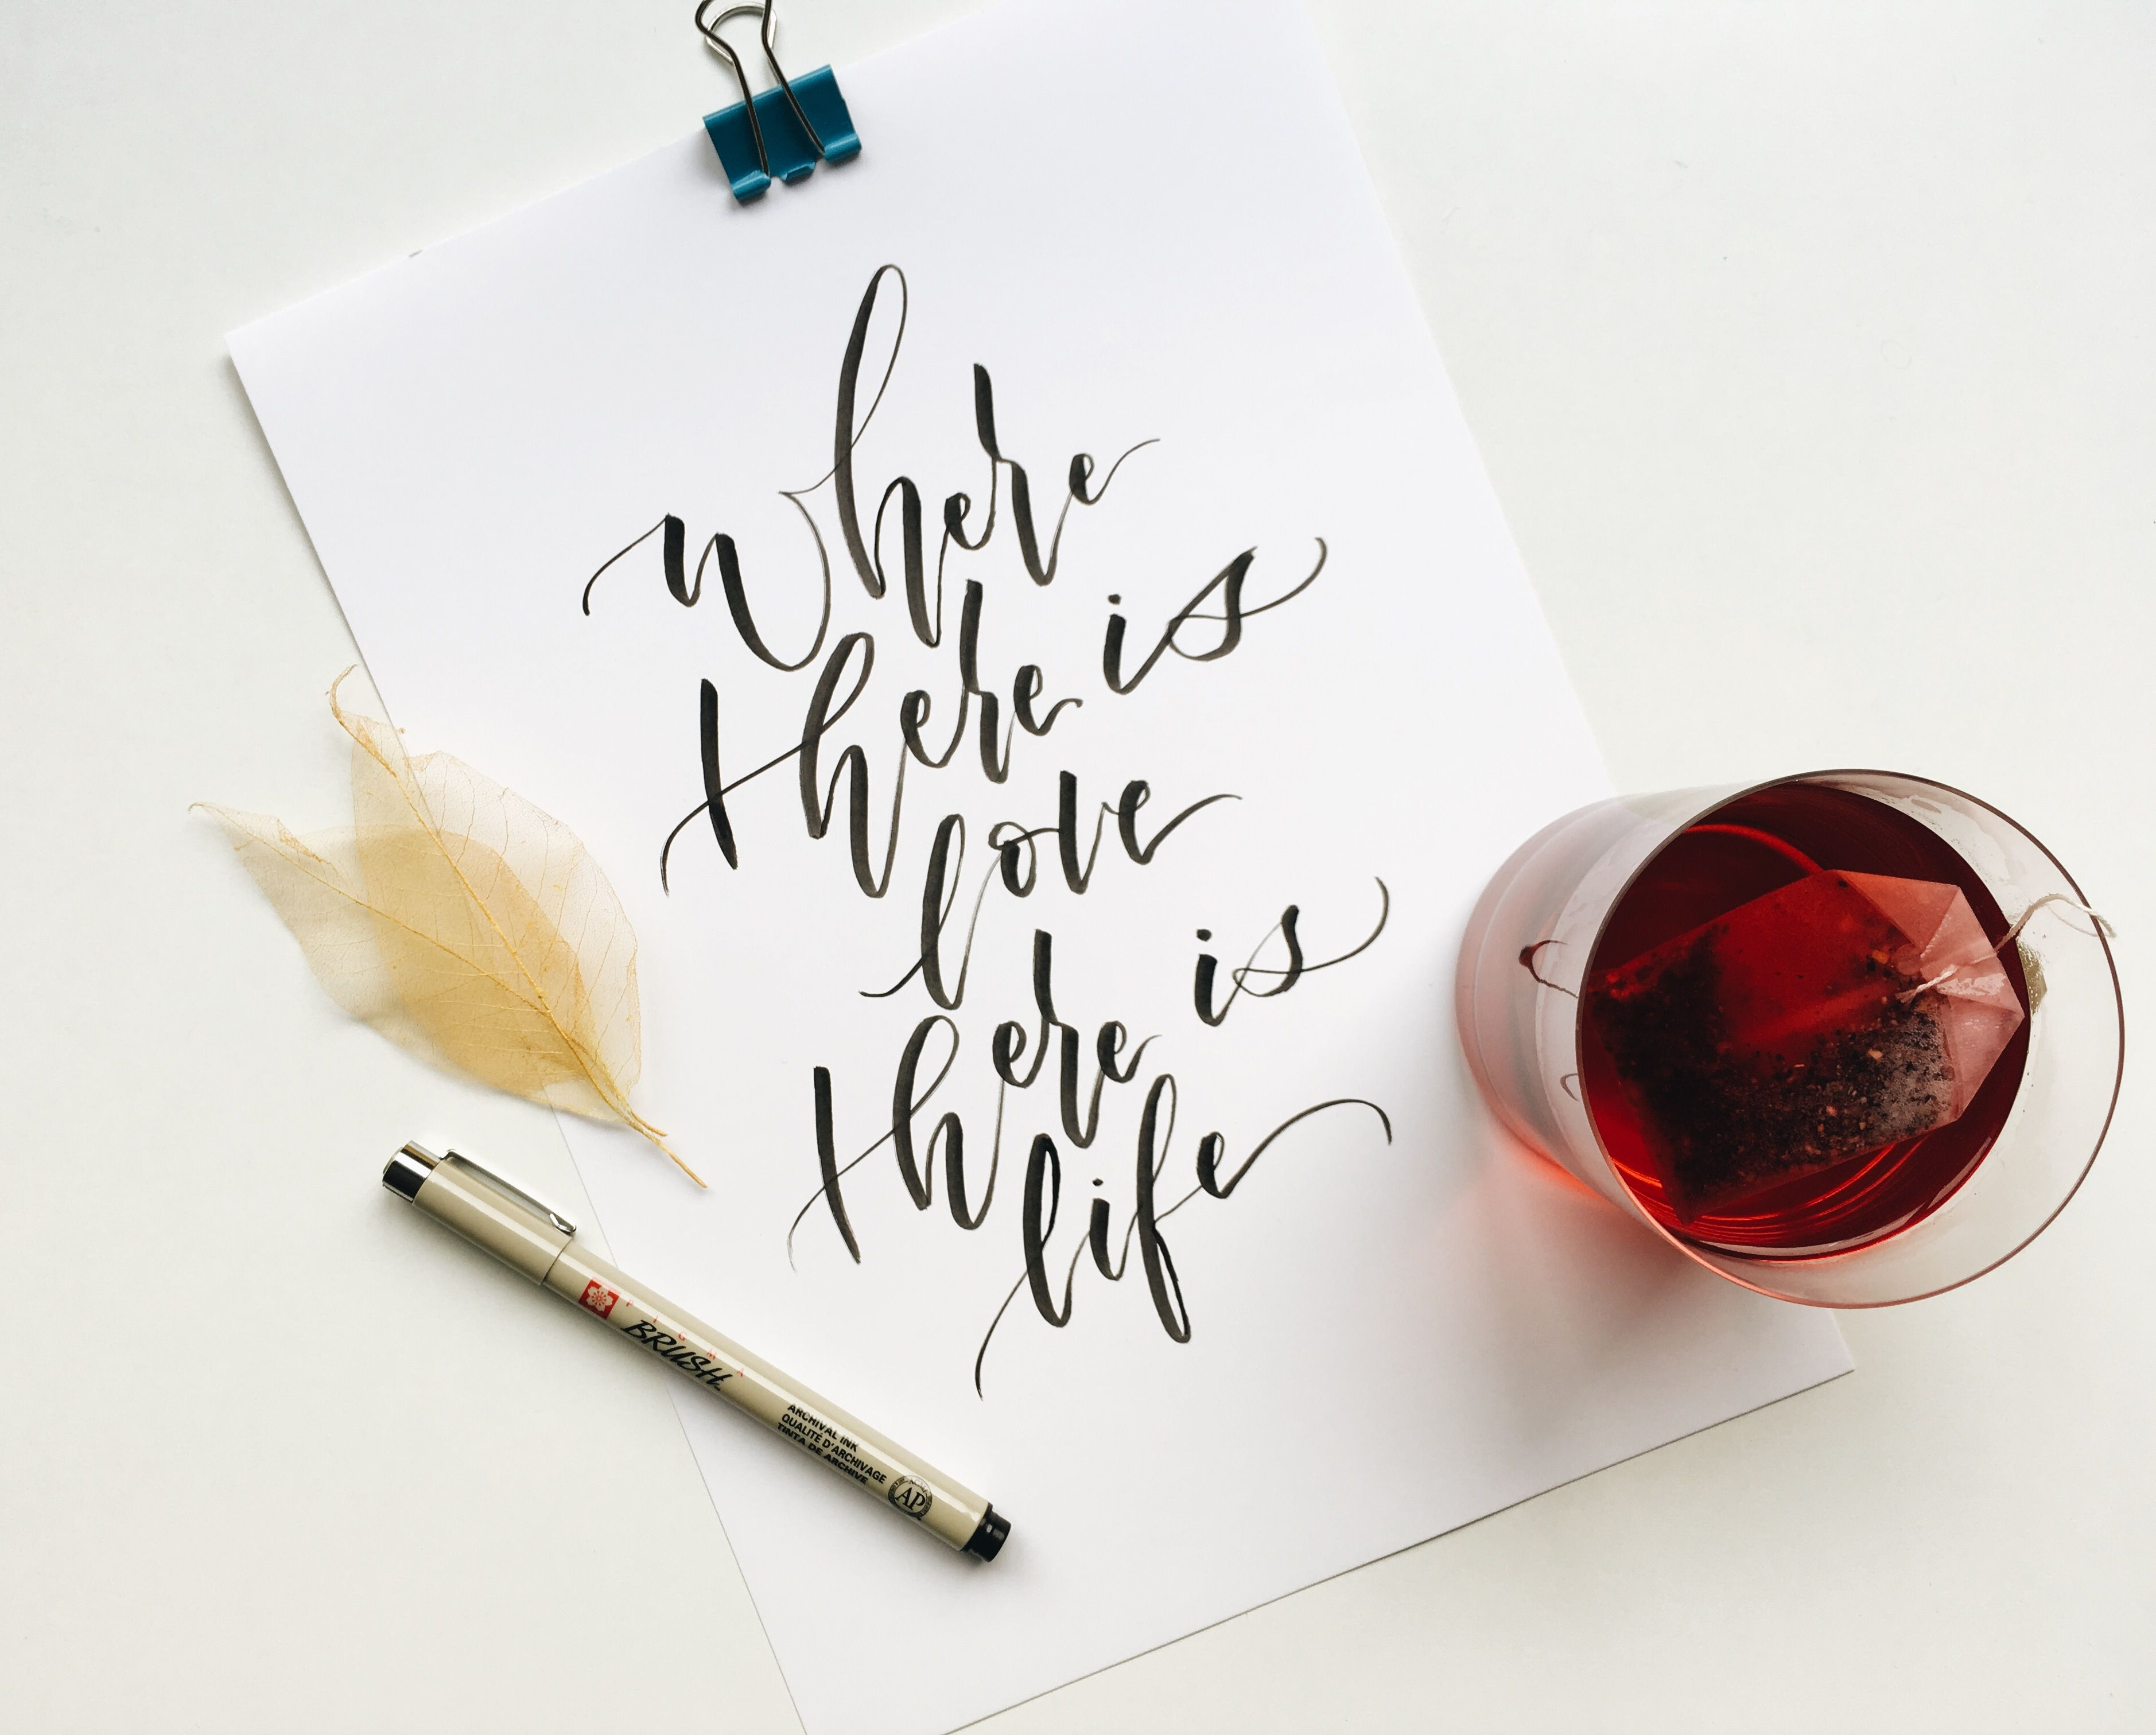 Pin by may oliveira on modern calligraphy pinterest modern